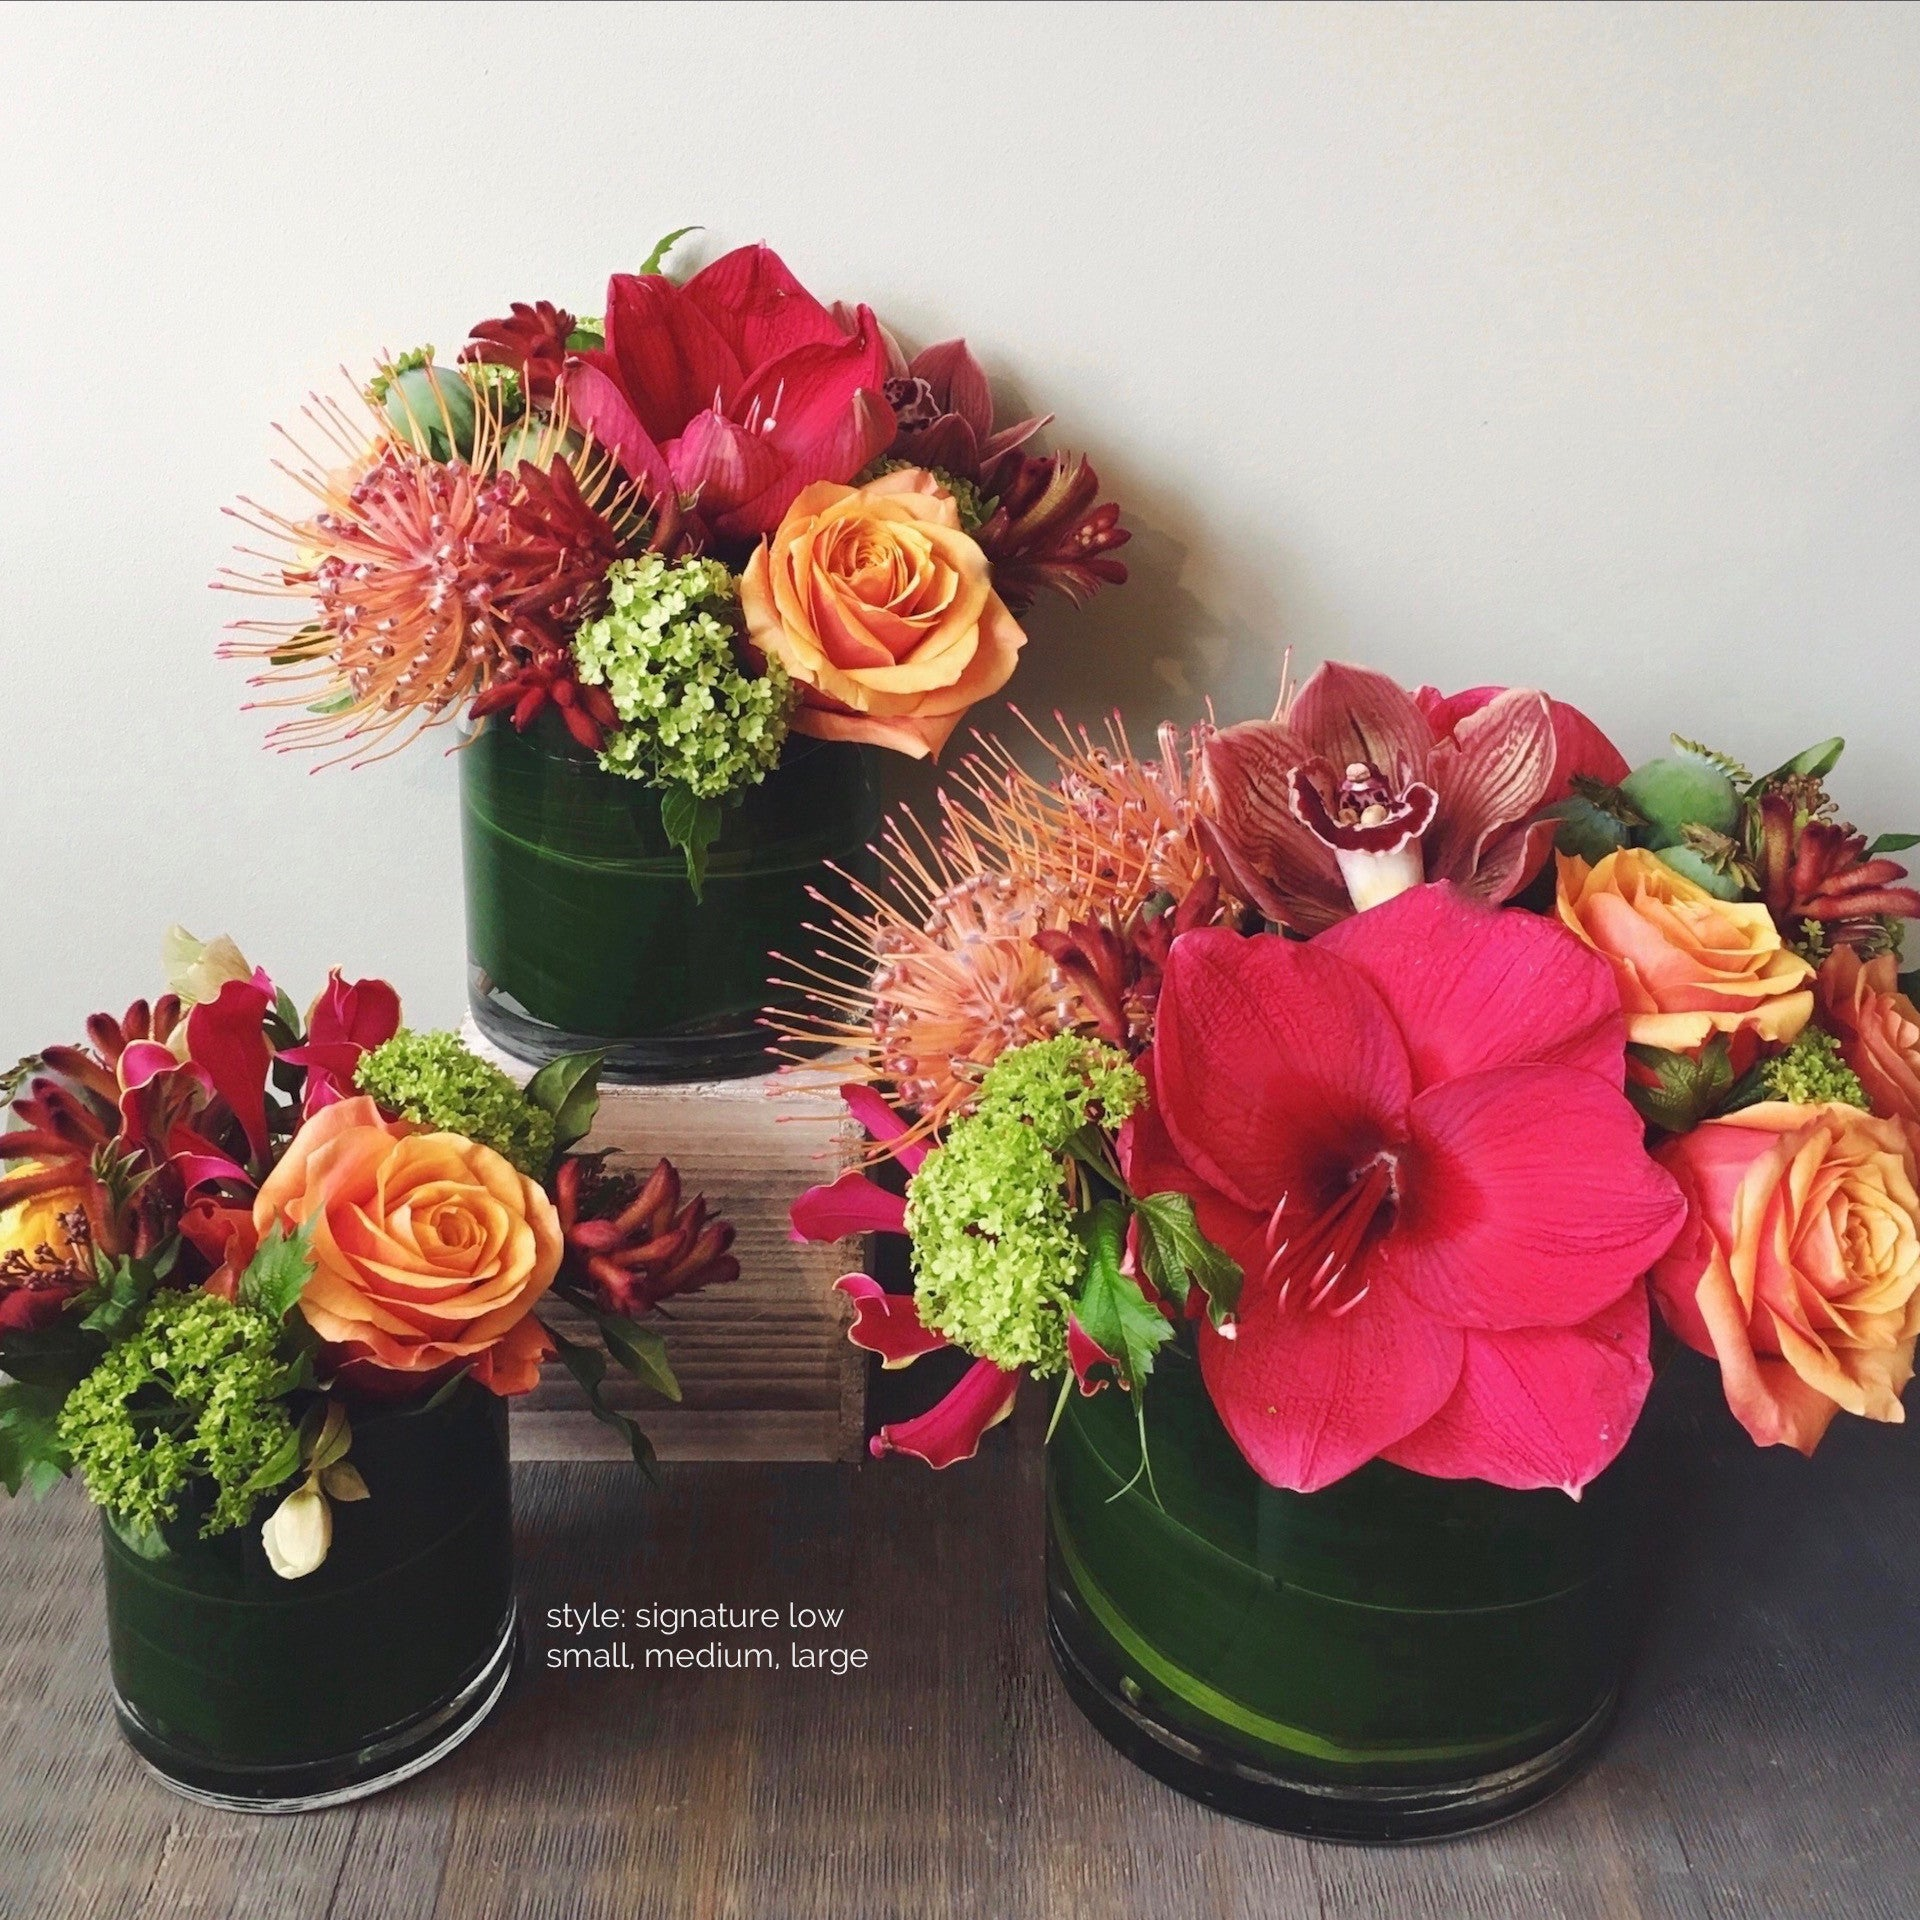 Small, medium, and large sized low arrangements available for delivery.